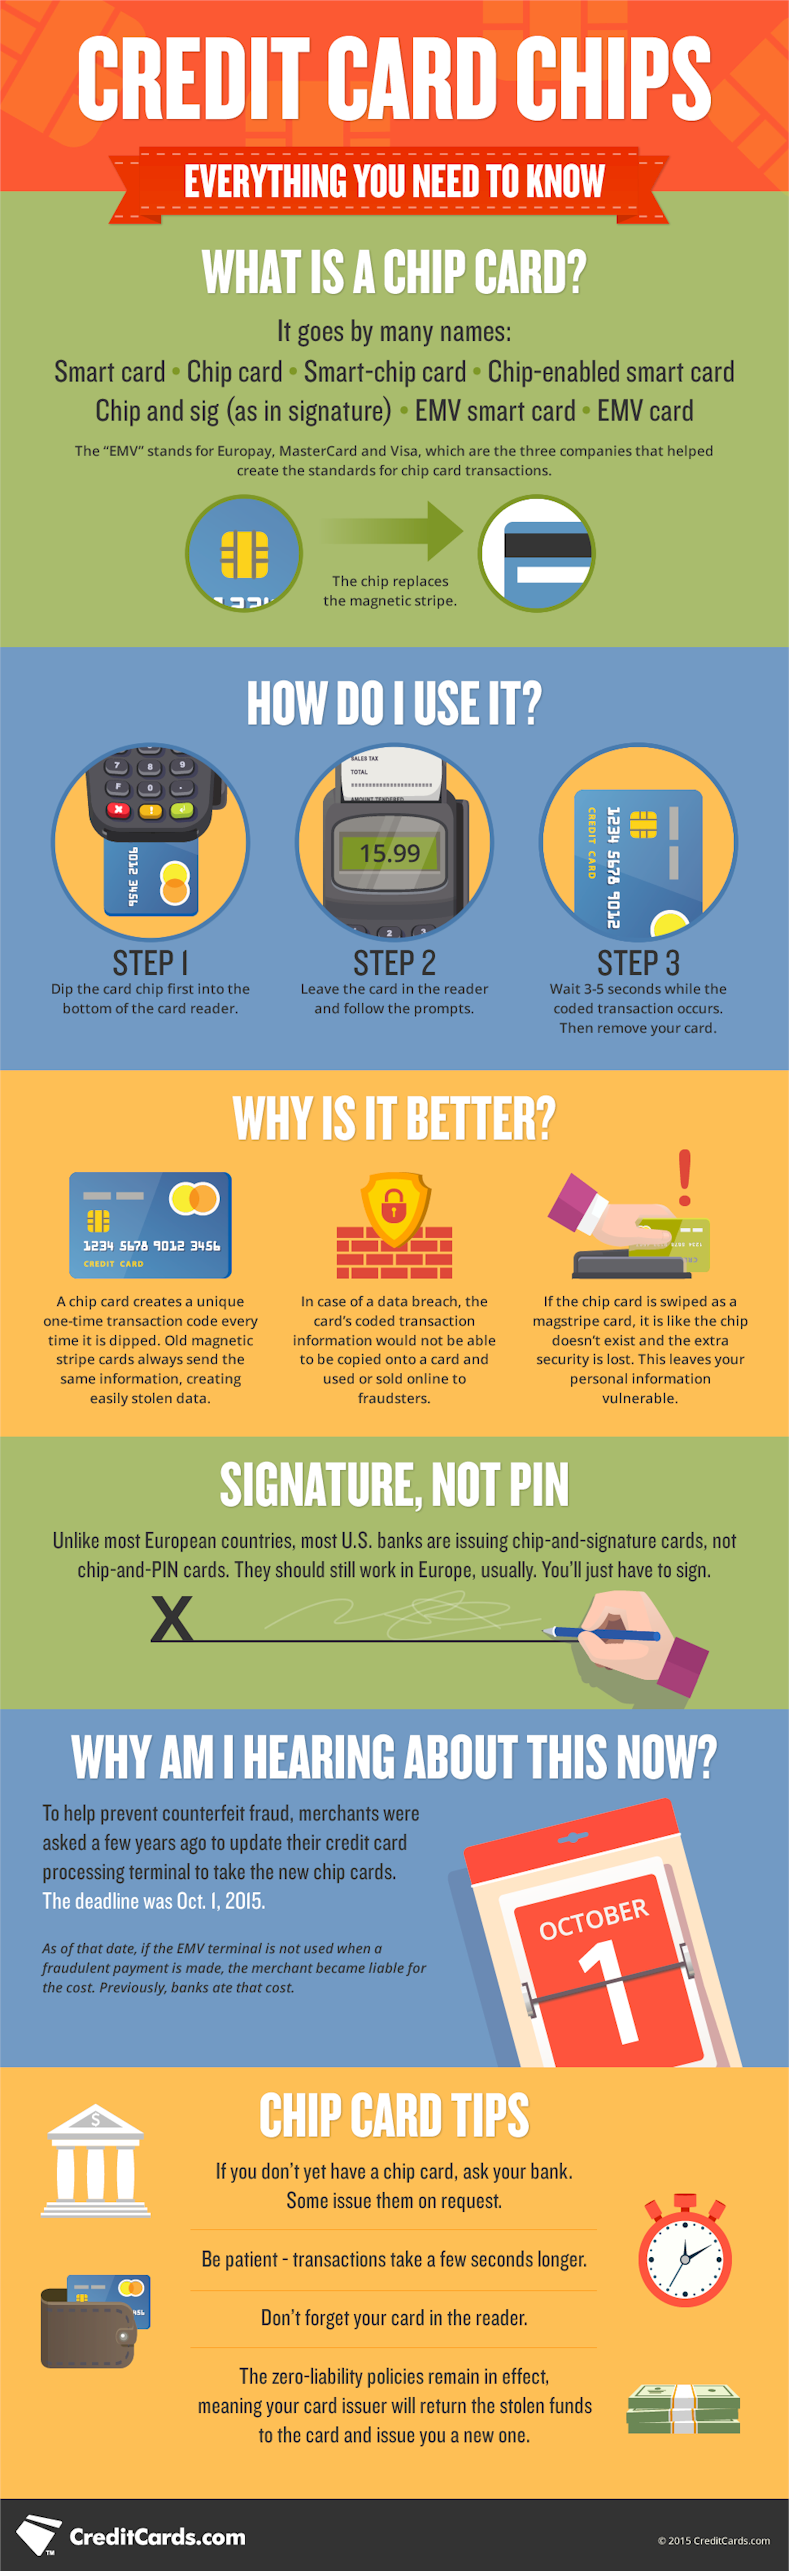 Credit Card Chips: Everything You Need To Know